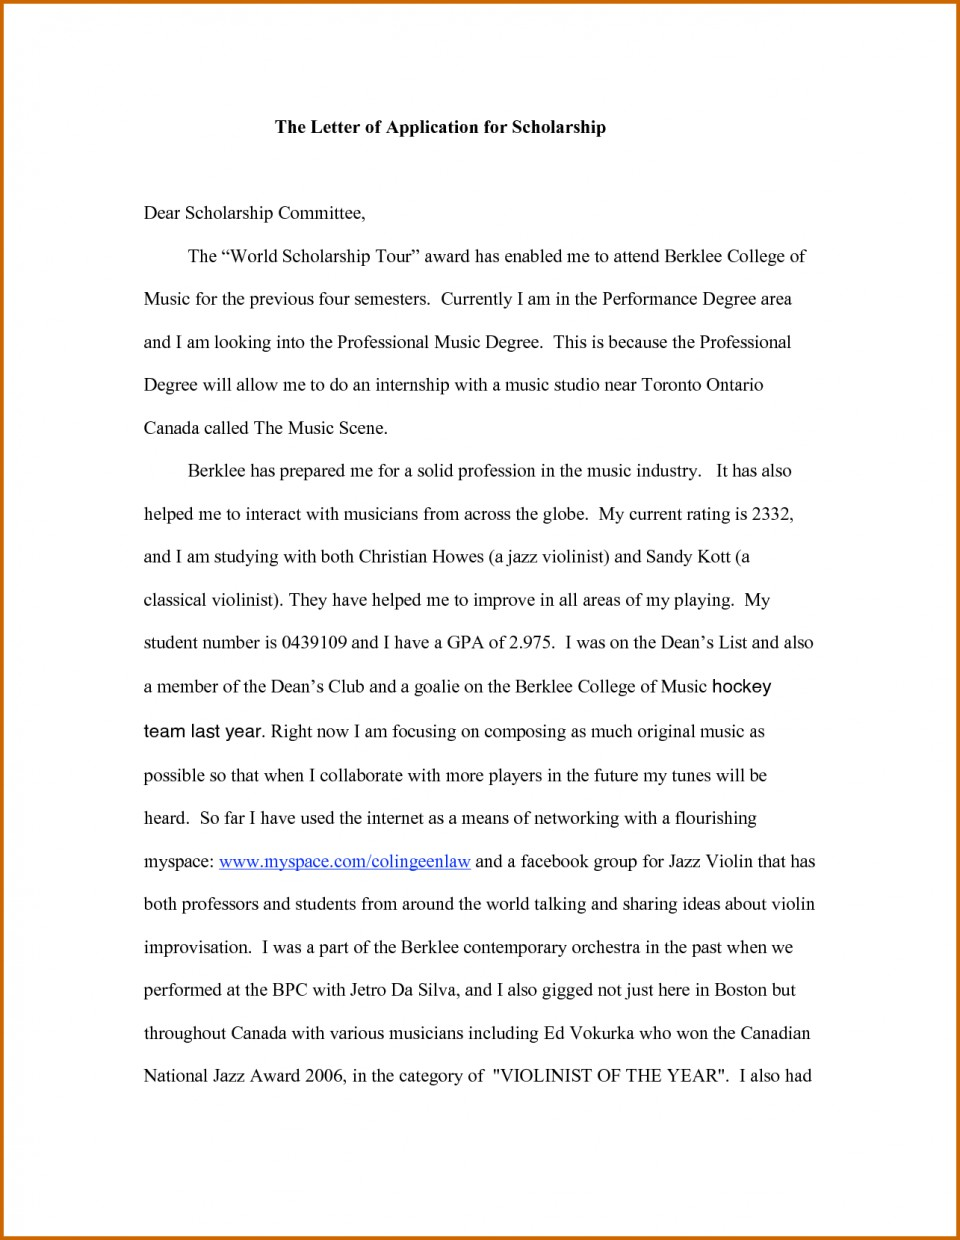 009 Essay Example How To Writepplication For Scholarship What Awesome Write A Introduction That Stands Out About Your Career Goals 960